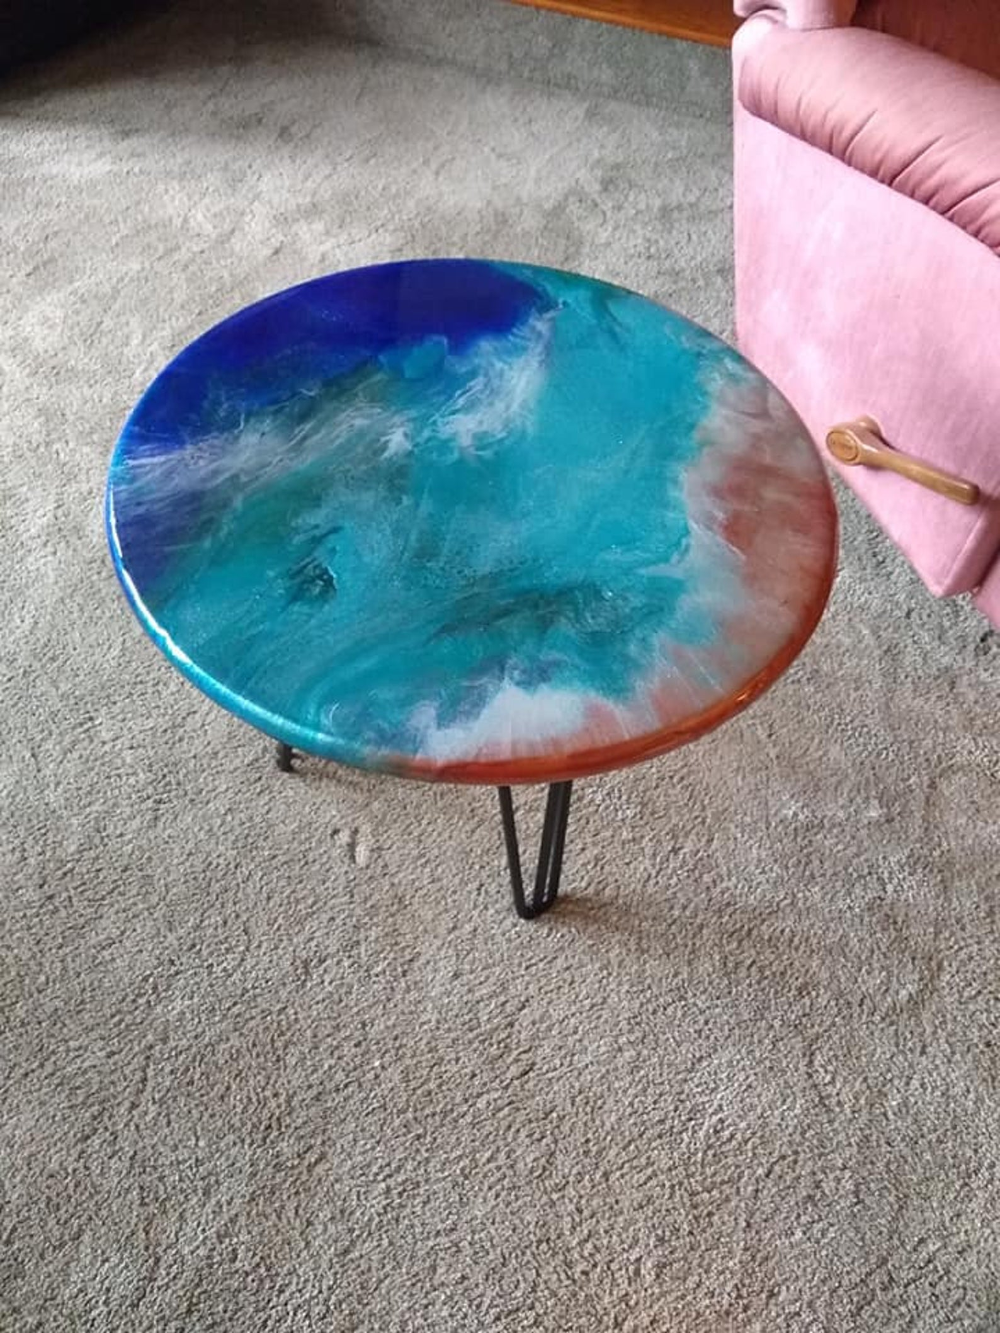 Special Listing Epoxy Resin Round Table Top 42 Inch Free Shipping Resin Table Backyard Furniture Resin Patio Furniture [ 1333 x 1000 Pixel ]